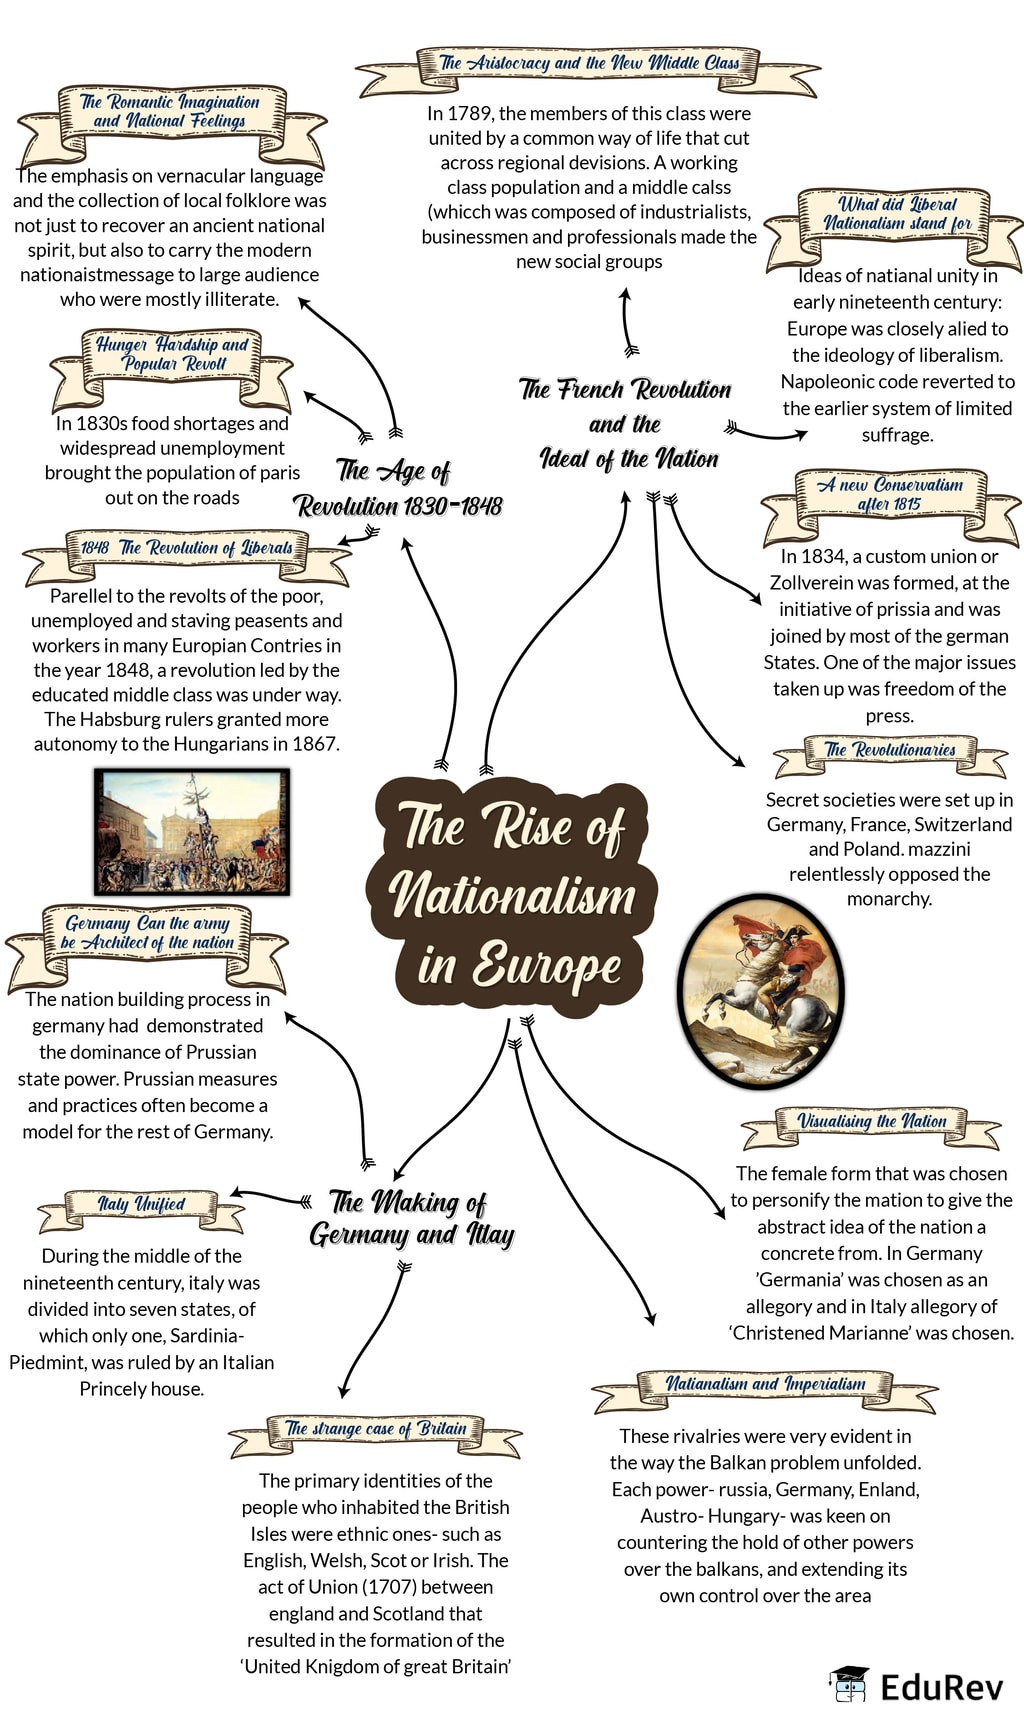 Mindmaps - The Rise of Nationalism in Europe Class 10 Notes | EduRev